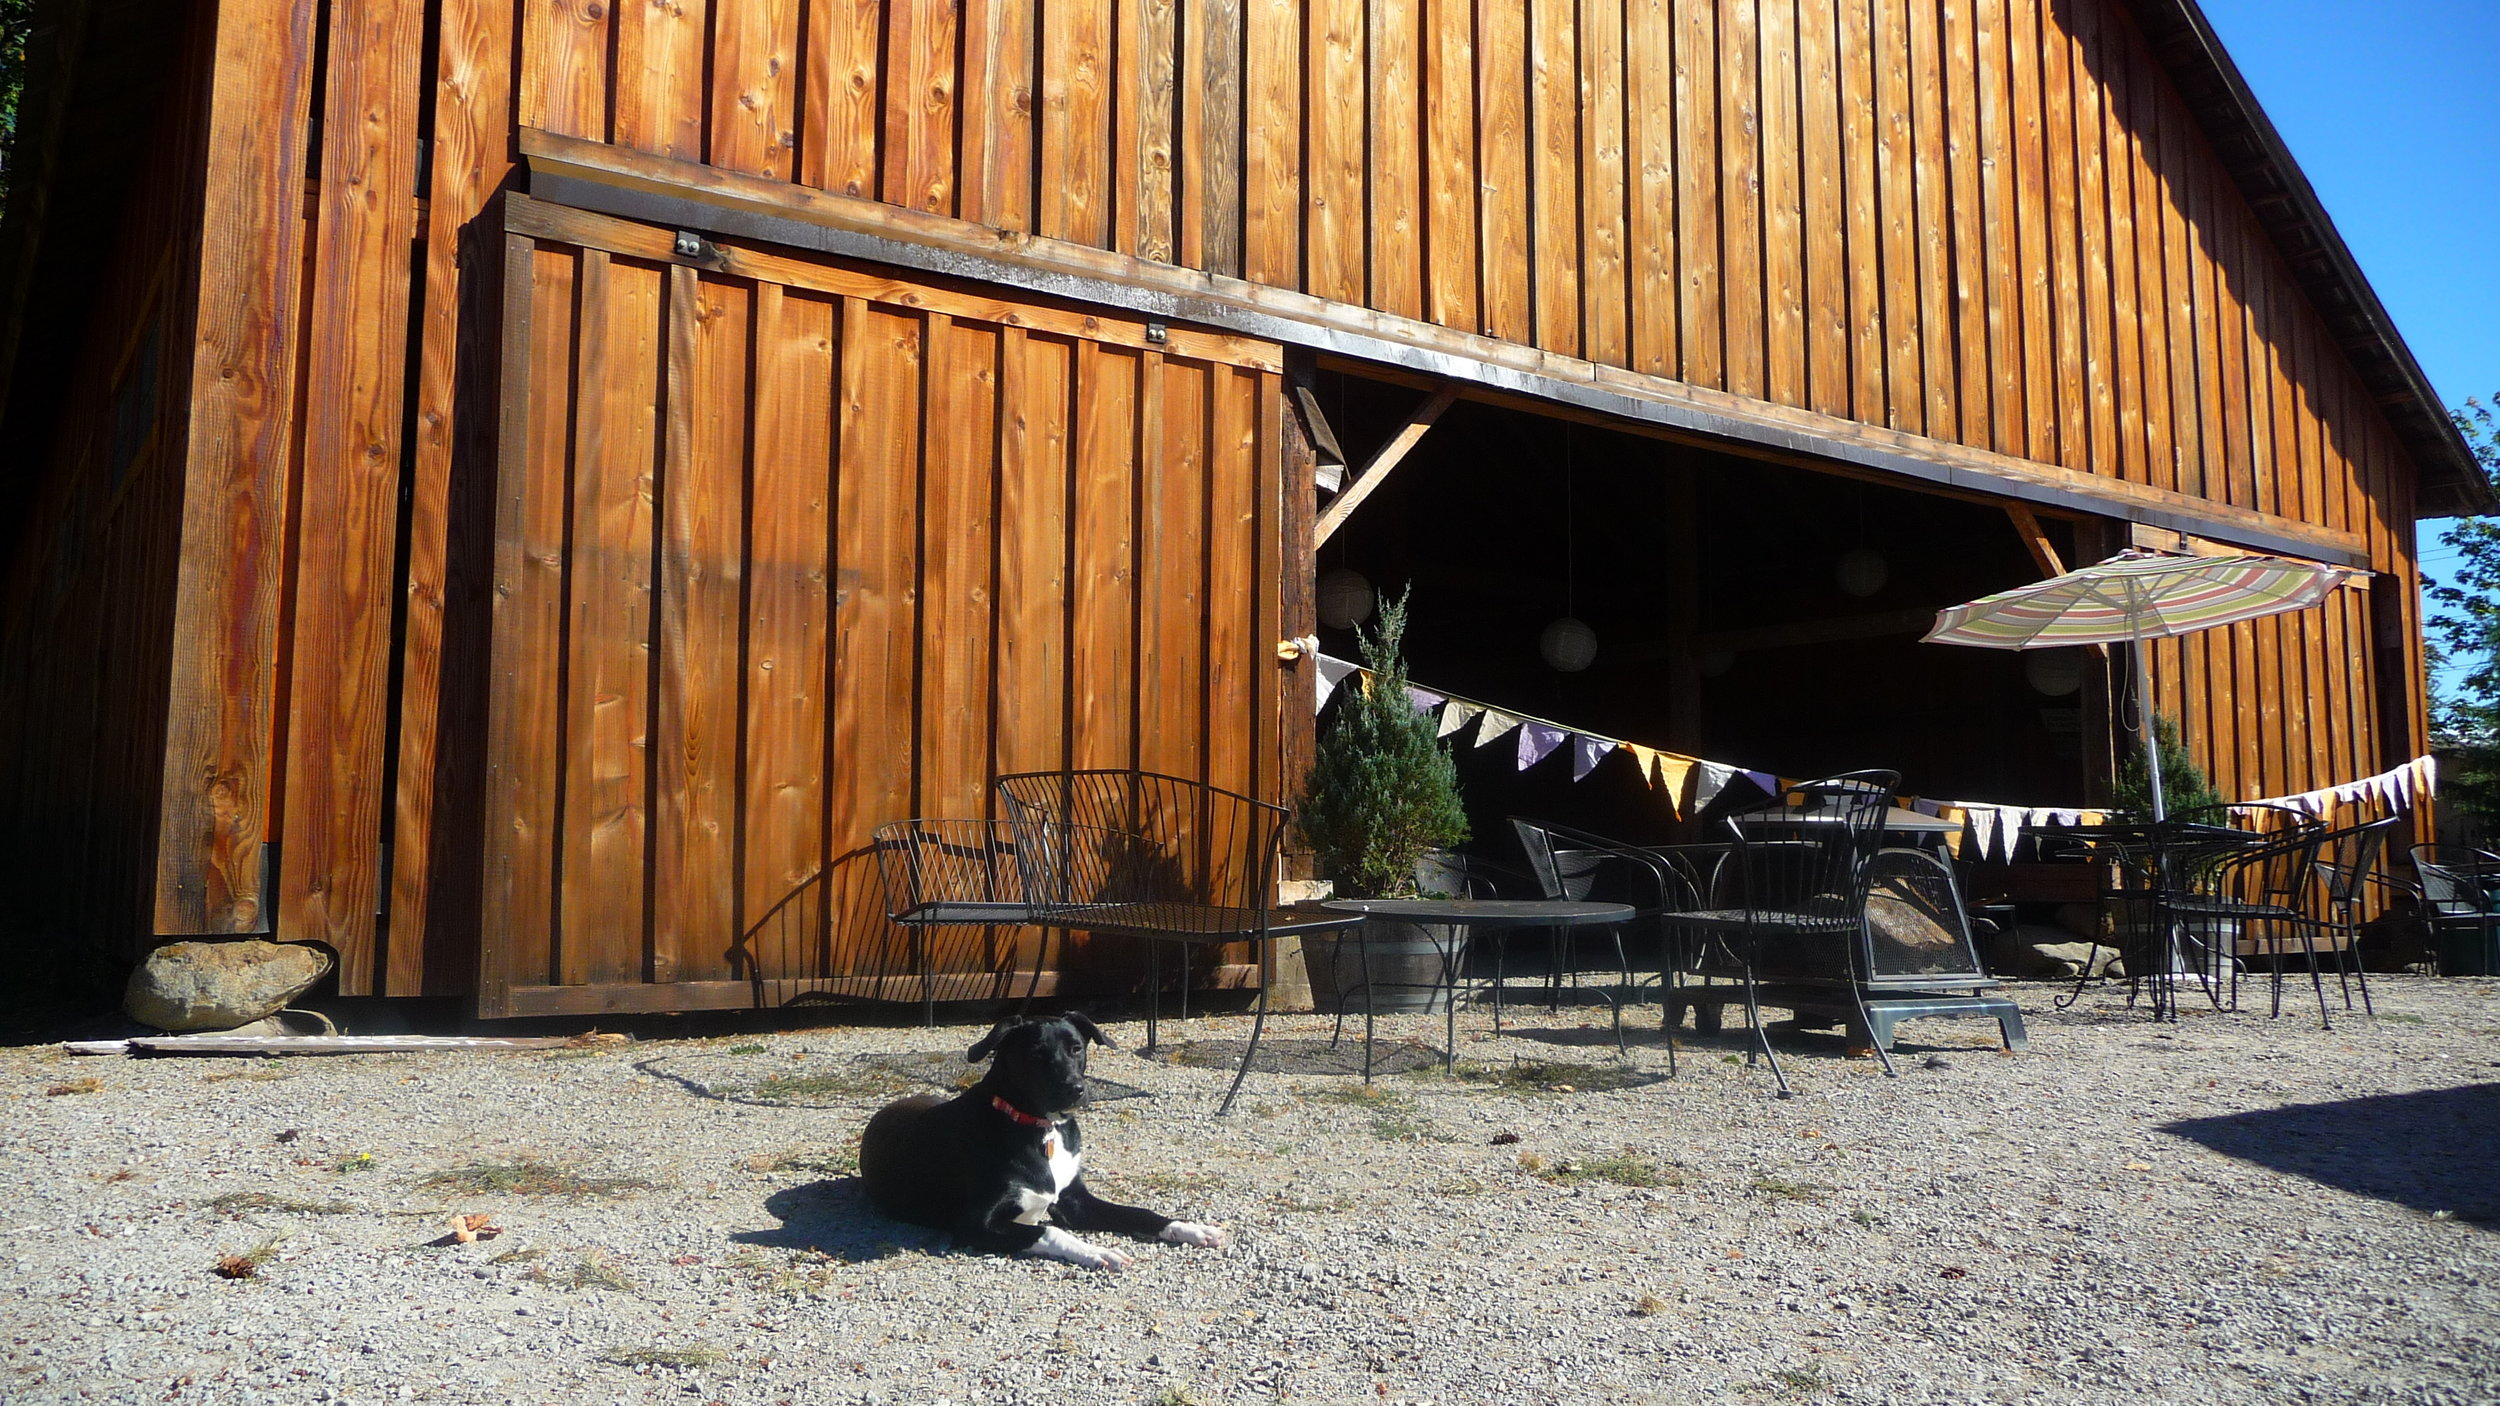 Cherish's pup posing in front of Heisen House Vineyards' historic barn